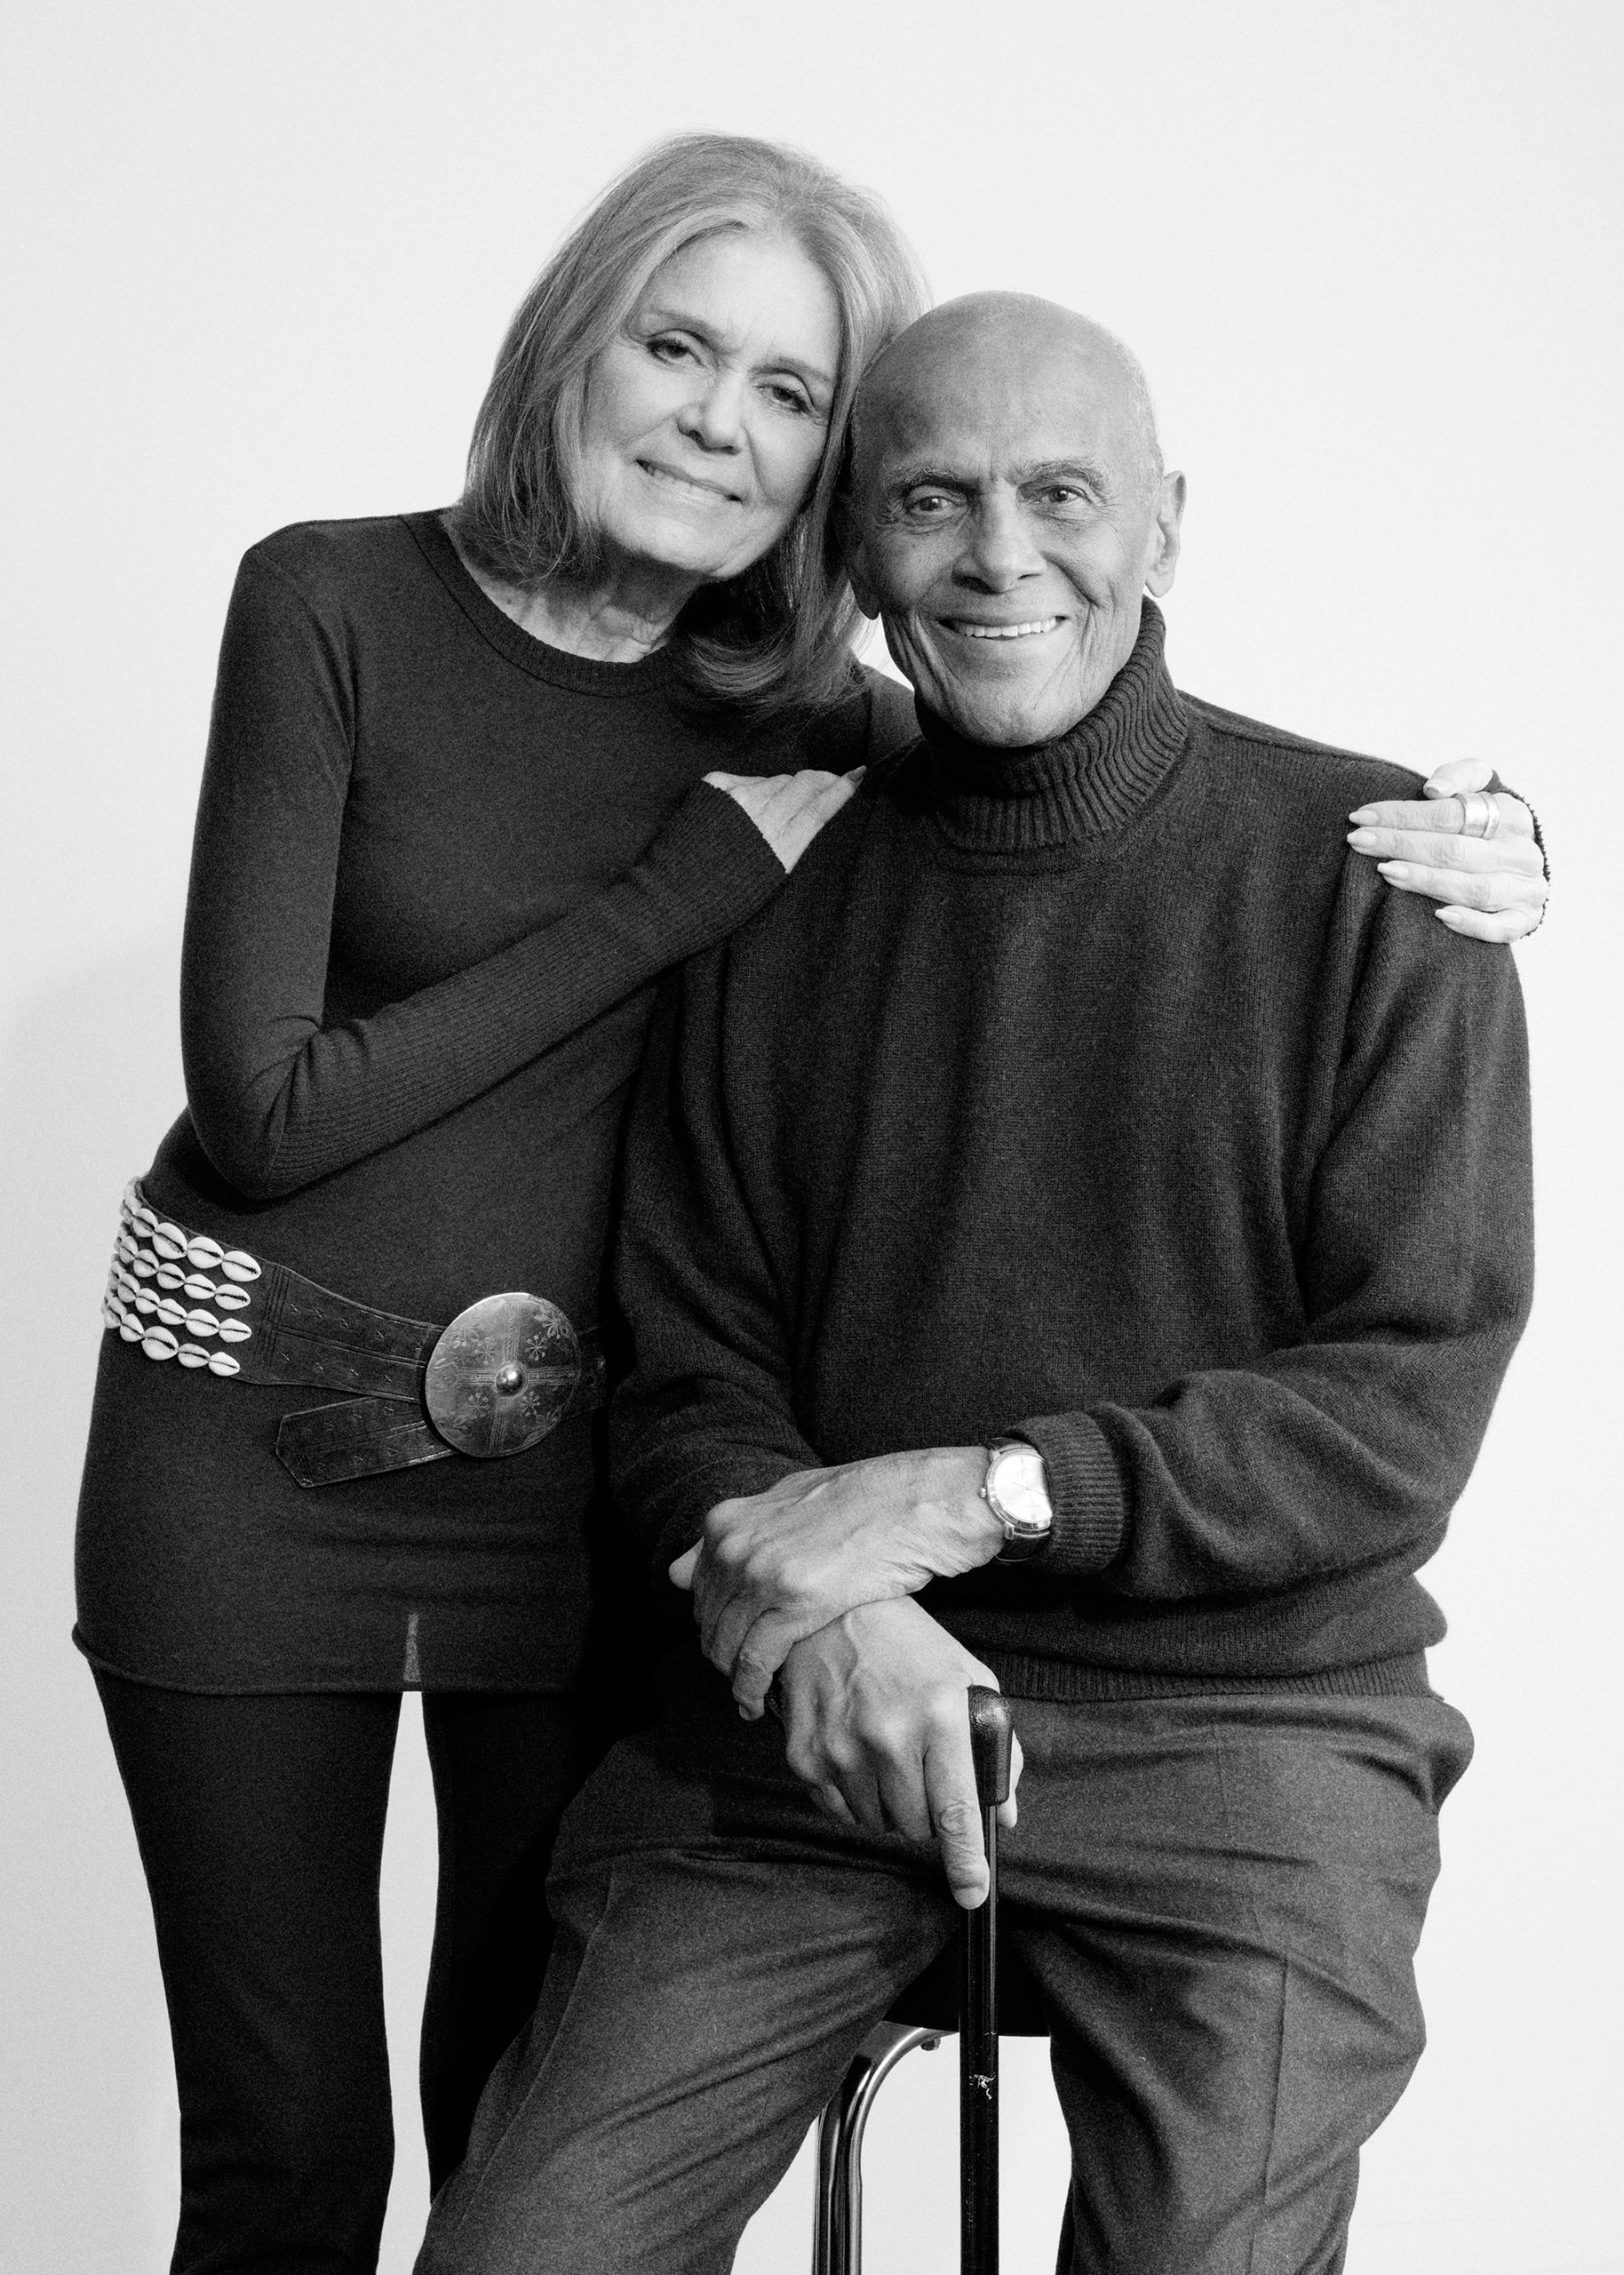 Honorary co-chairs for the Woman's March on Washington. Gloria Steinem and Harry Belafonte in New York on Jan. 9, 2017